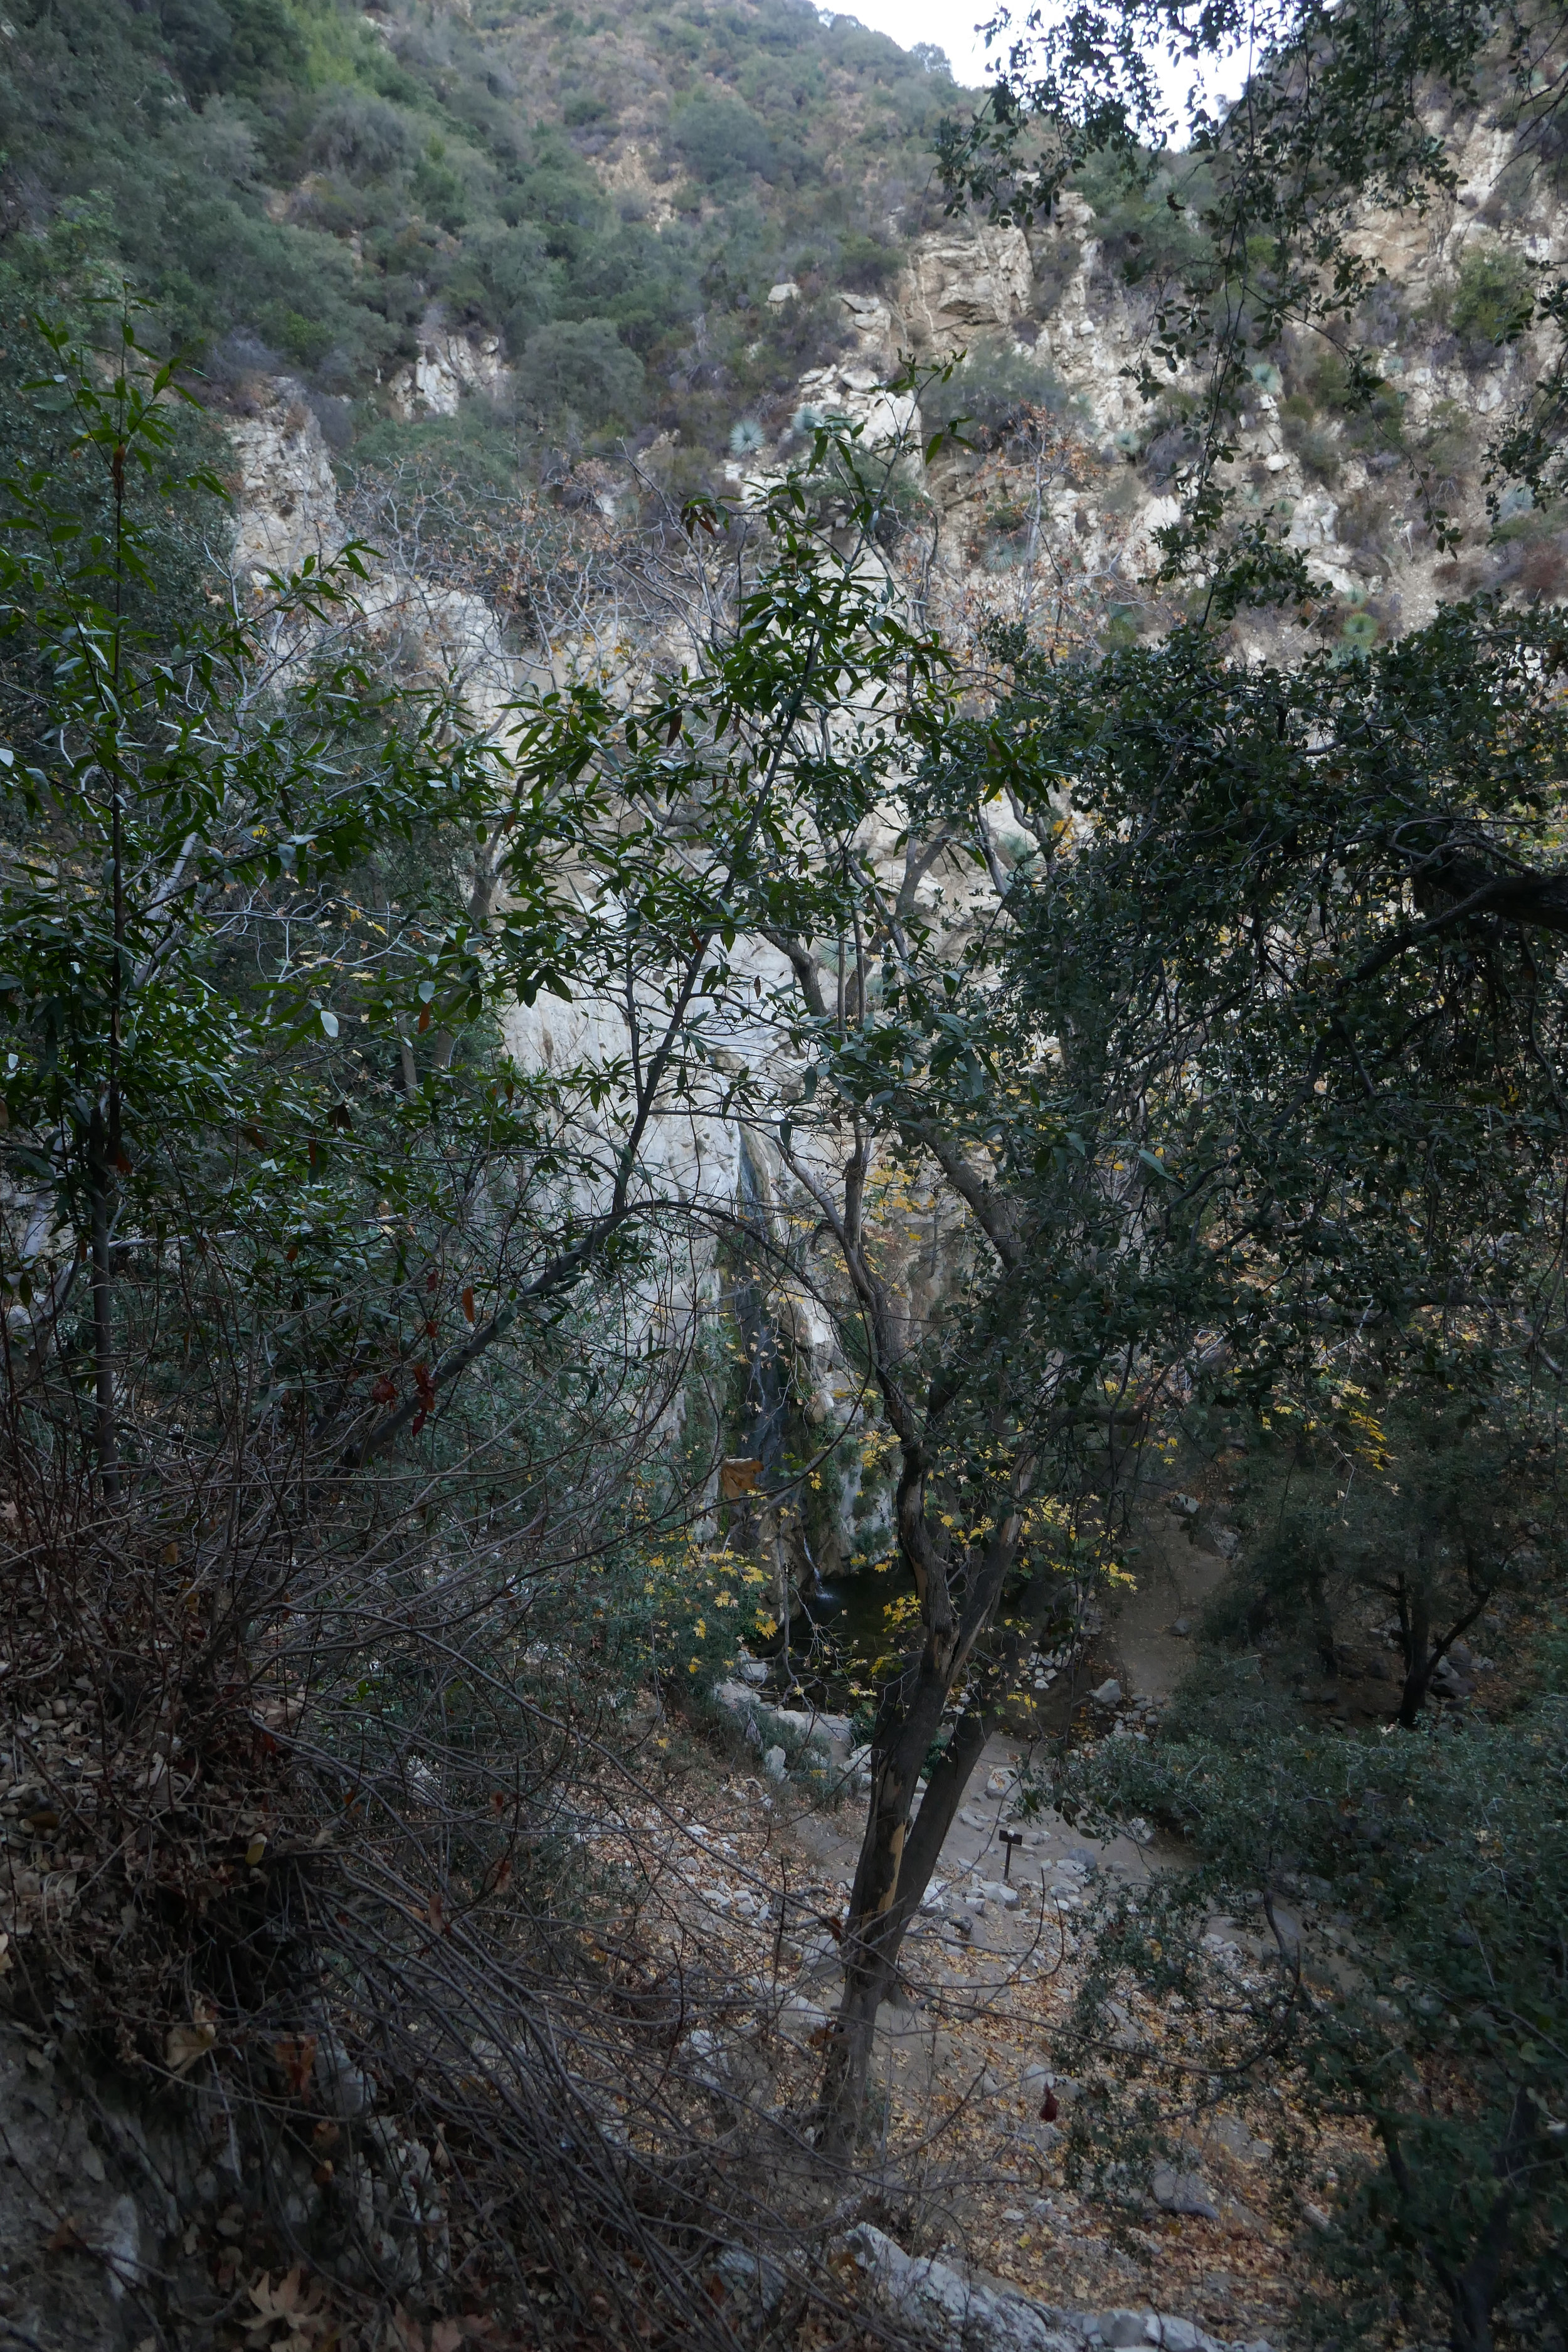 Looking through the trees at Sturtevant Falls.